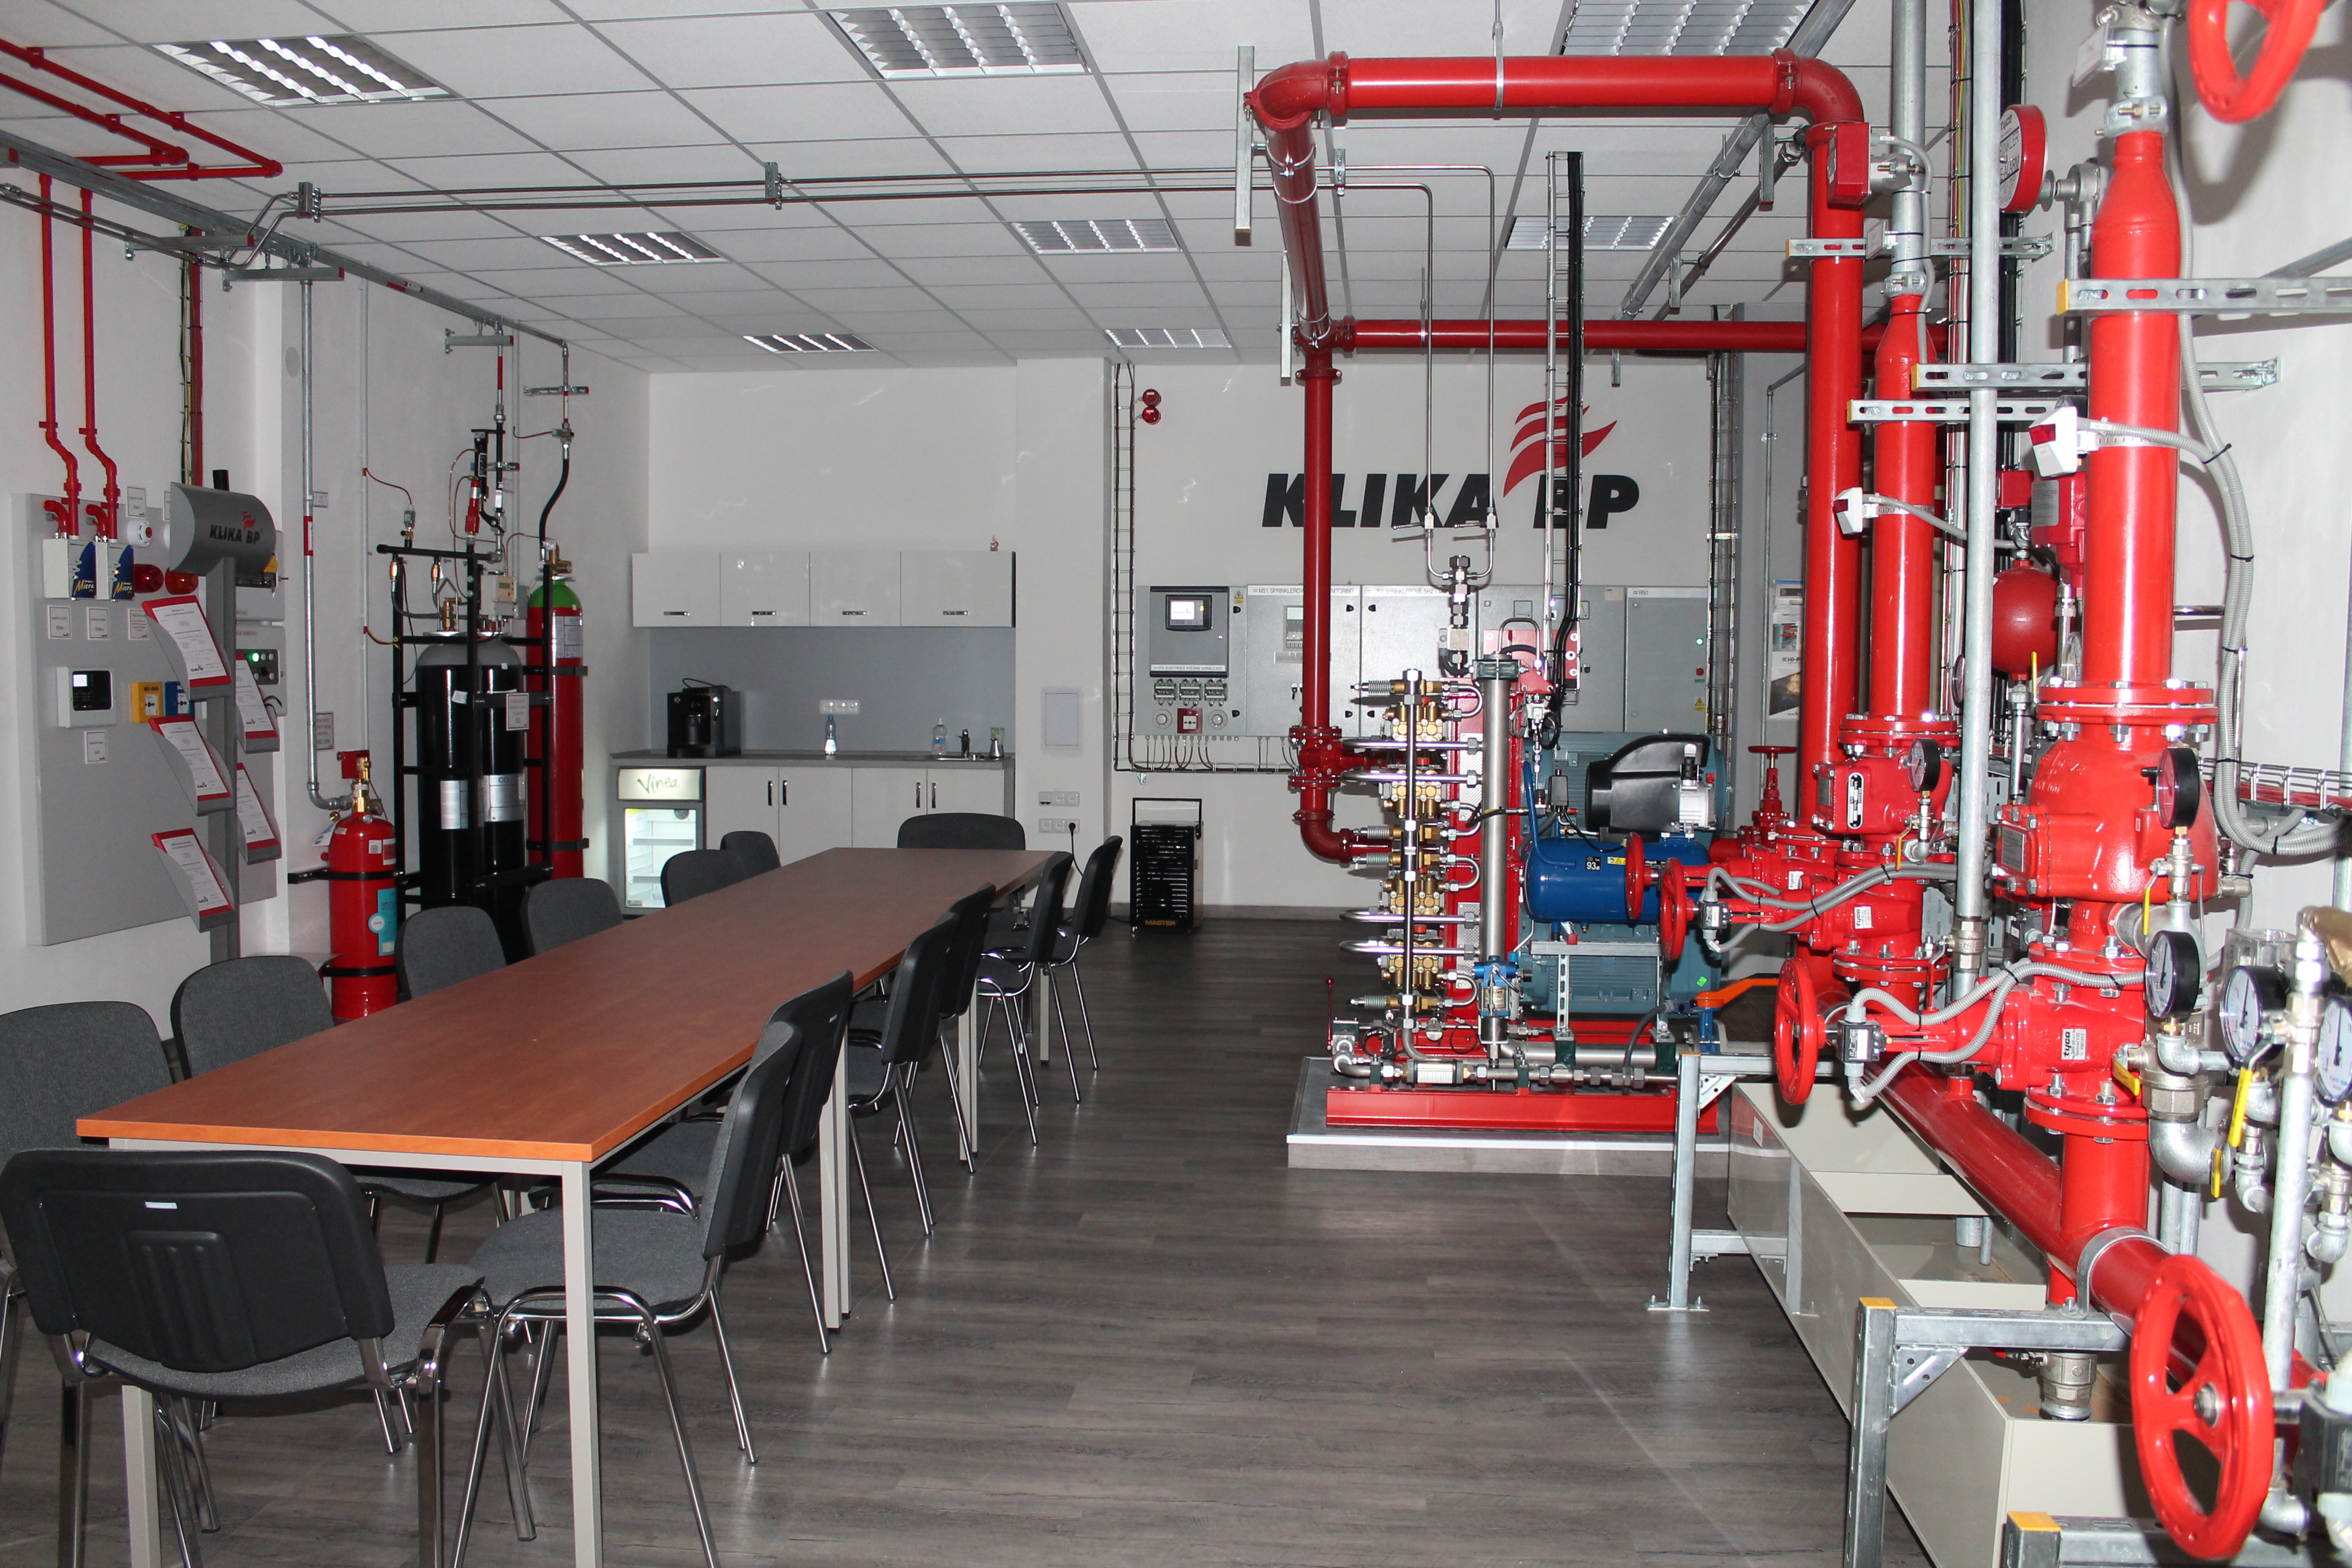 We Are Specialists In Fire Safety Klika Bp A S